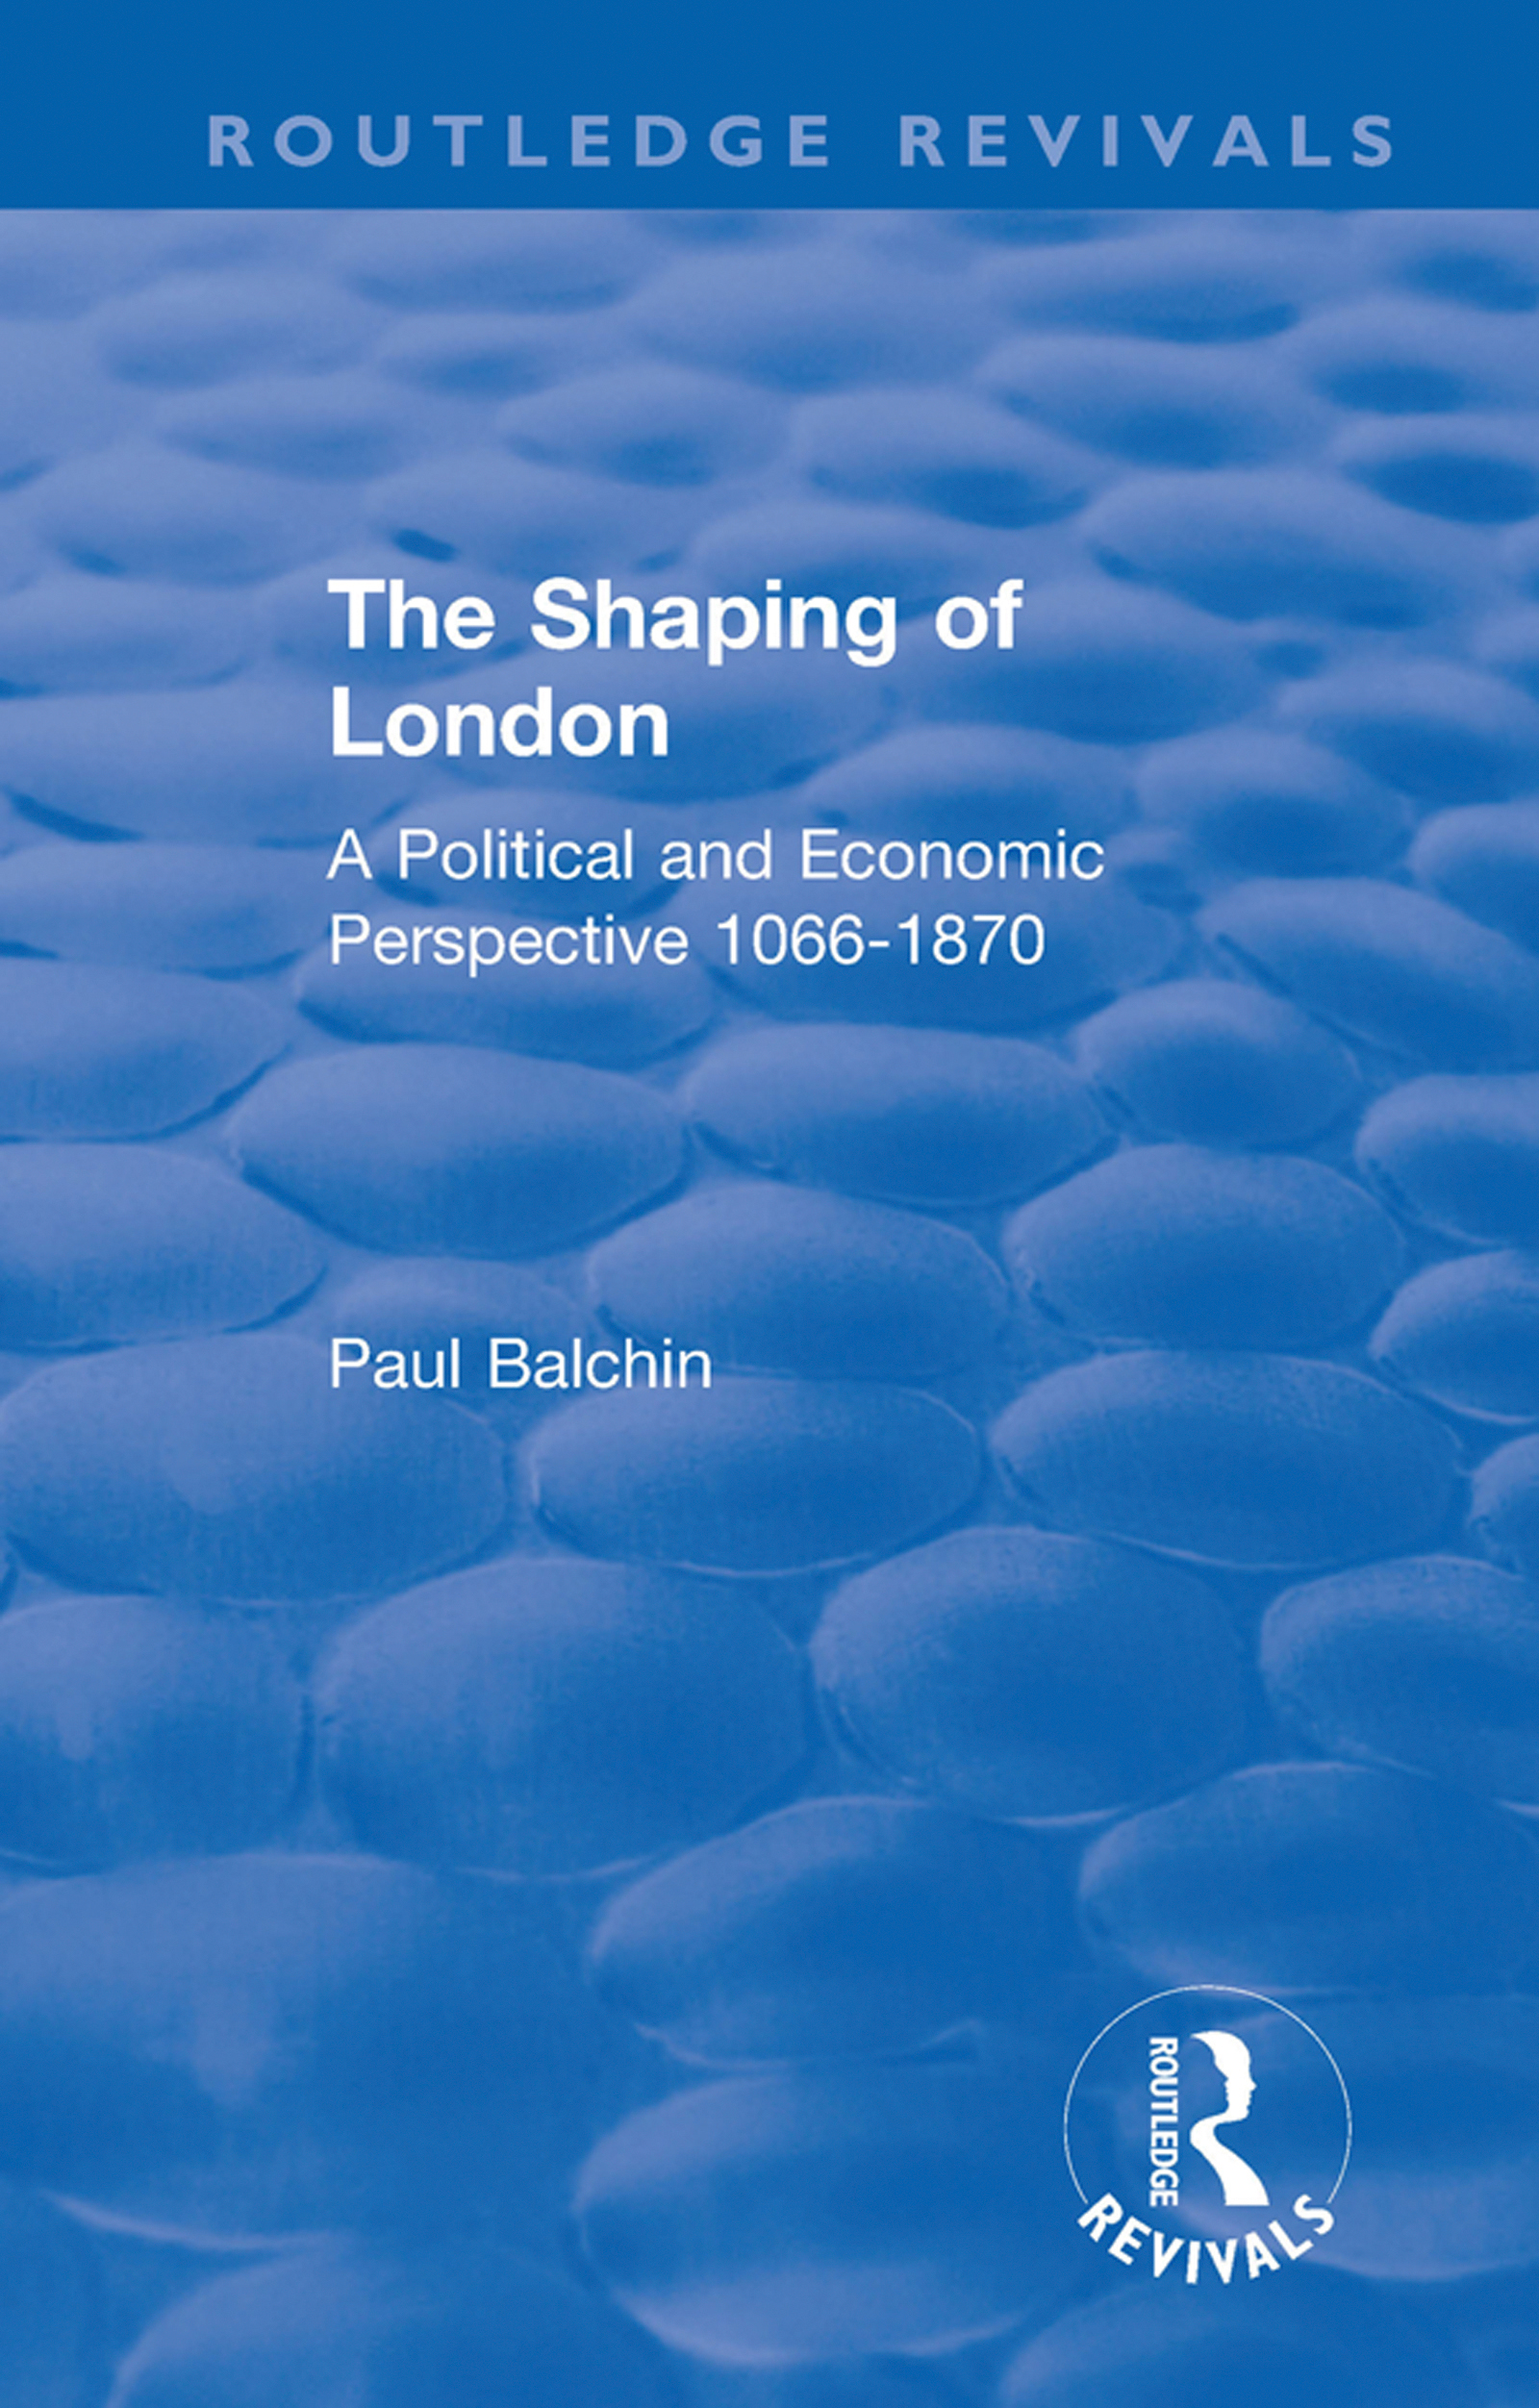 Early and Mid-Victorian London: the formation of a megalopolis and the agglomeration of styles